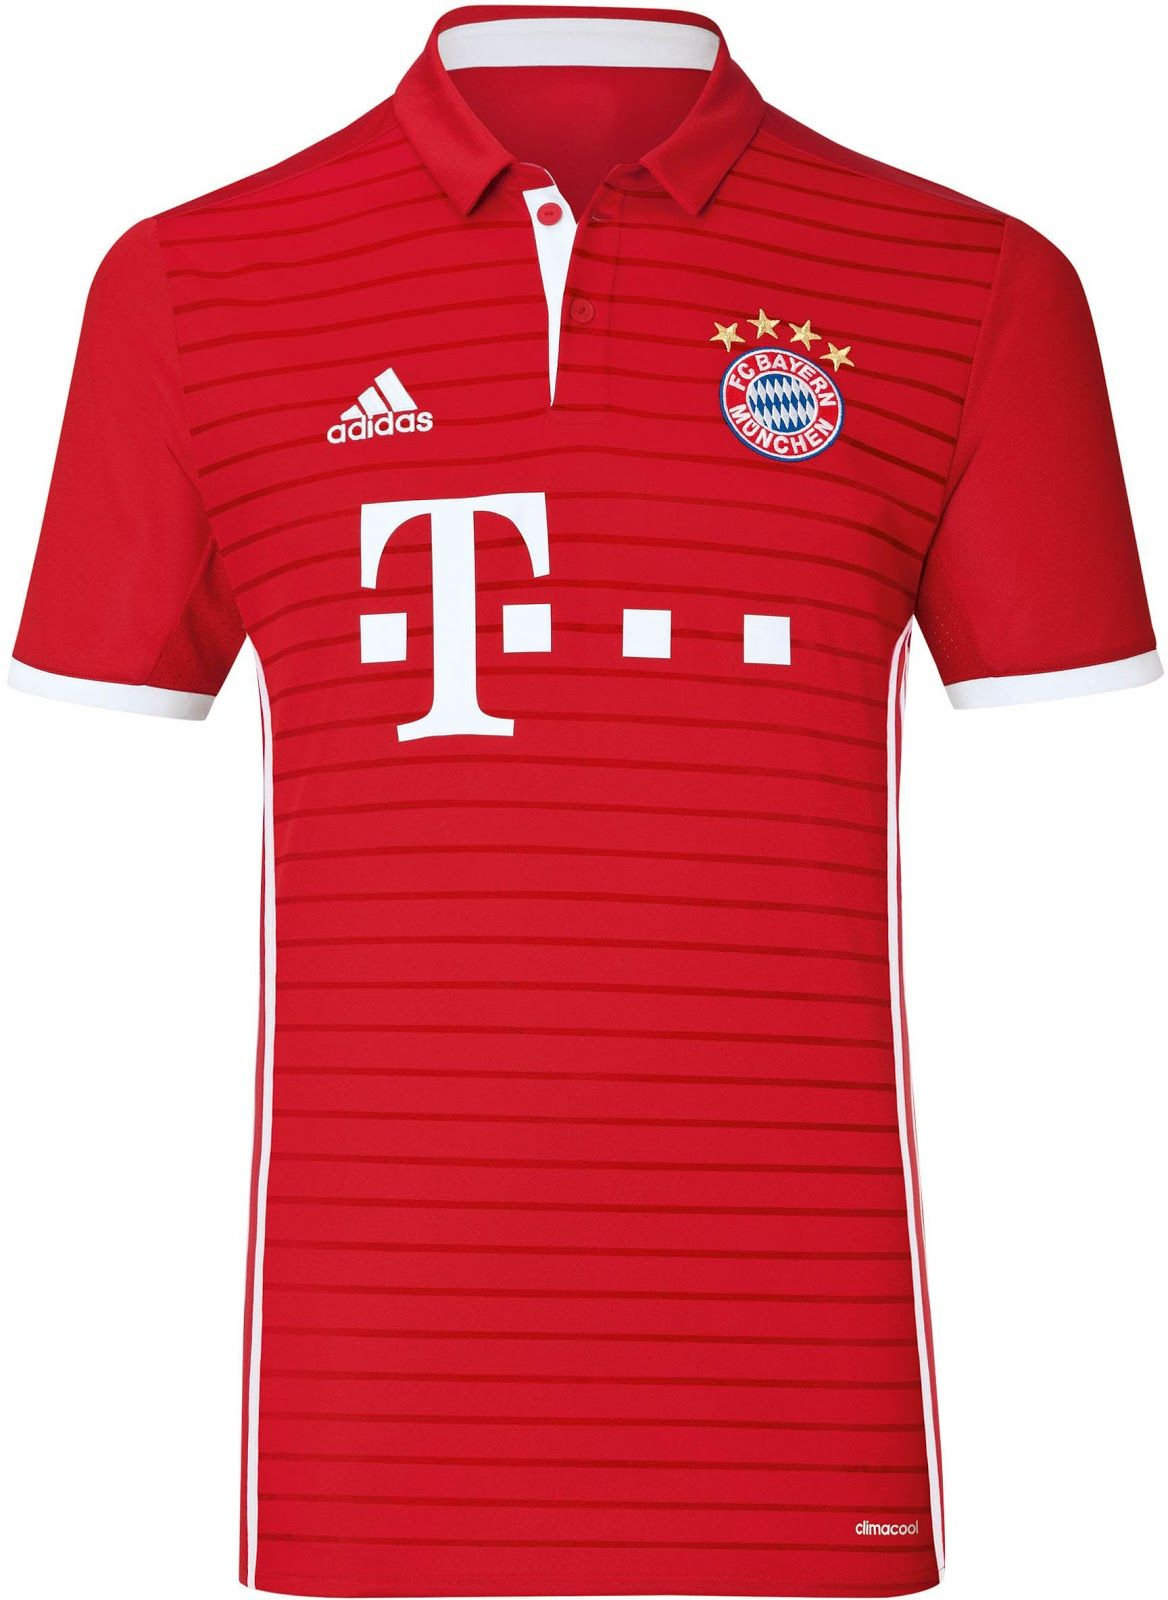 The Bayern München 16-17 home kit combines traditional style with modern  elements. 5733a0ed1